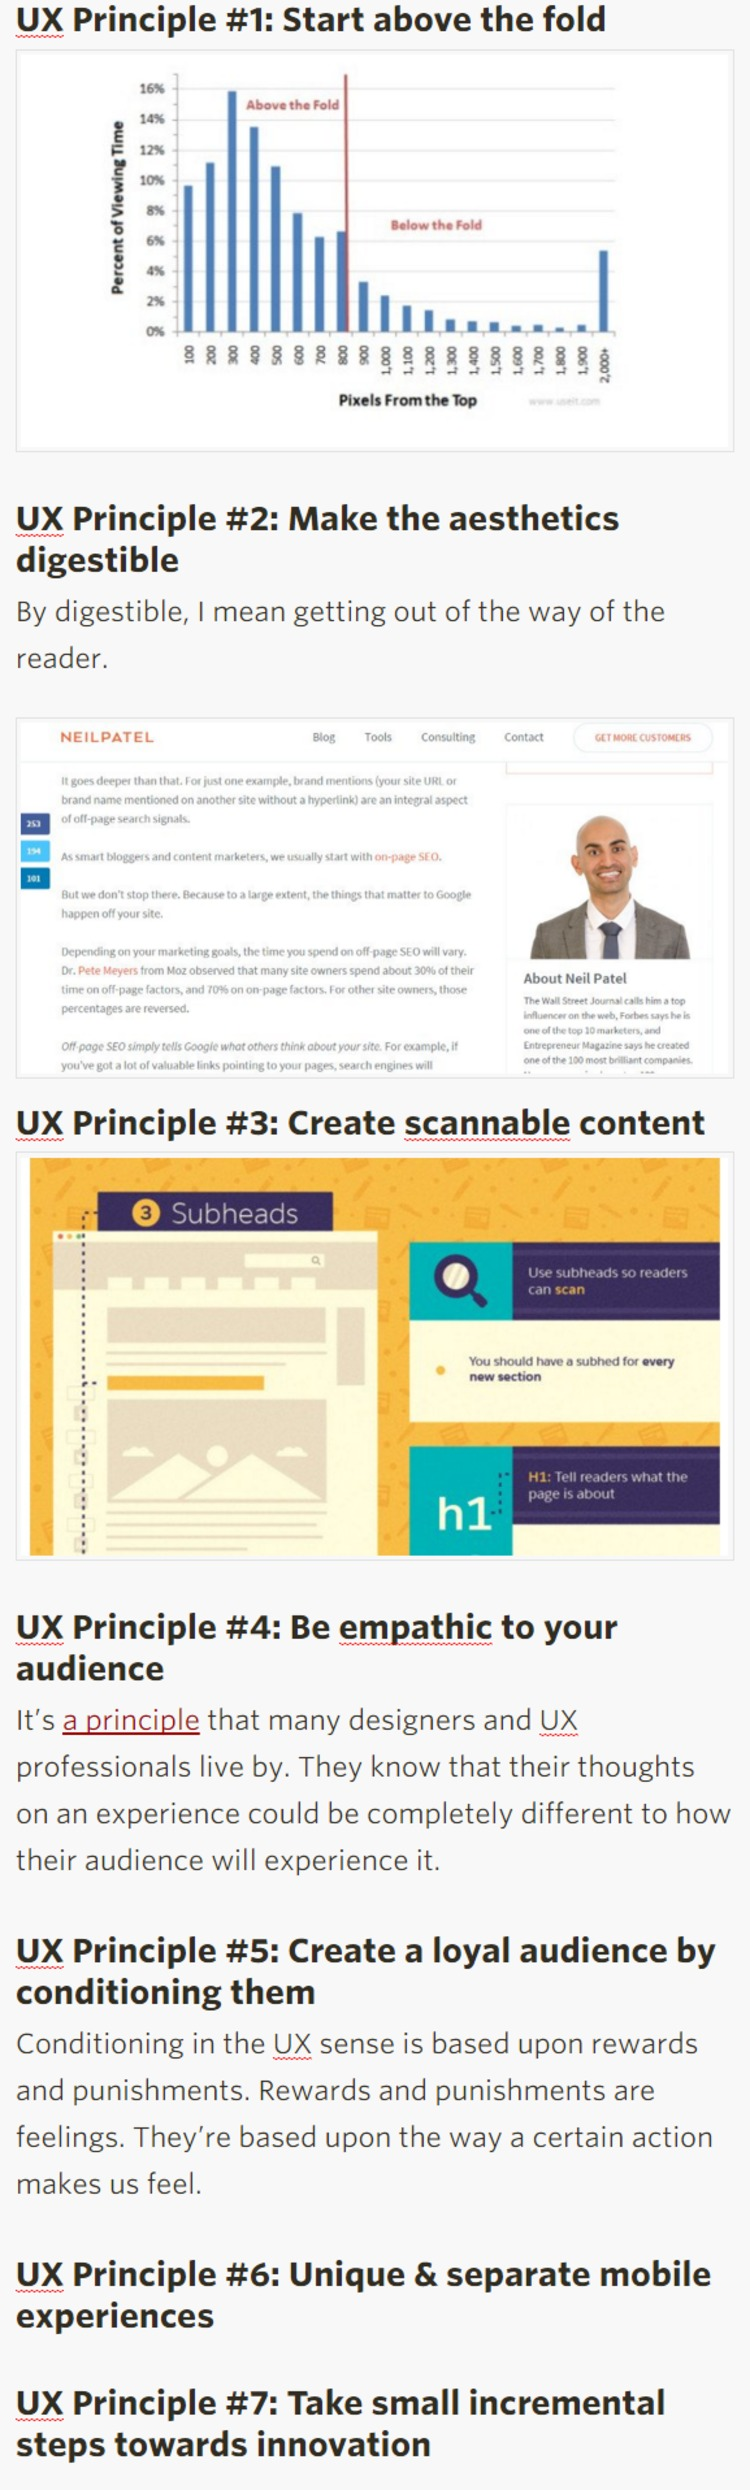 7 UX Principles to Include in Your Content That Will Hook Readers | @contentmrktrapp | The Marketing Technology Alert | Scoop.it